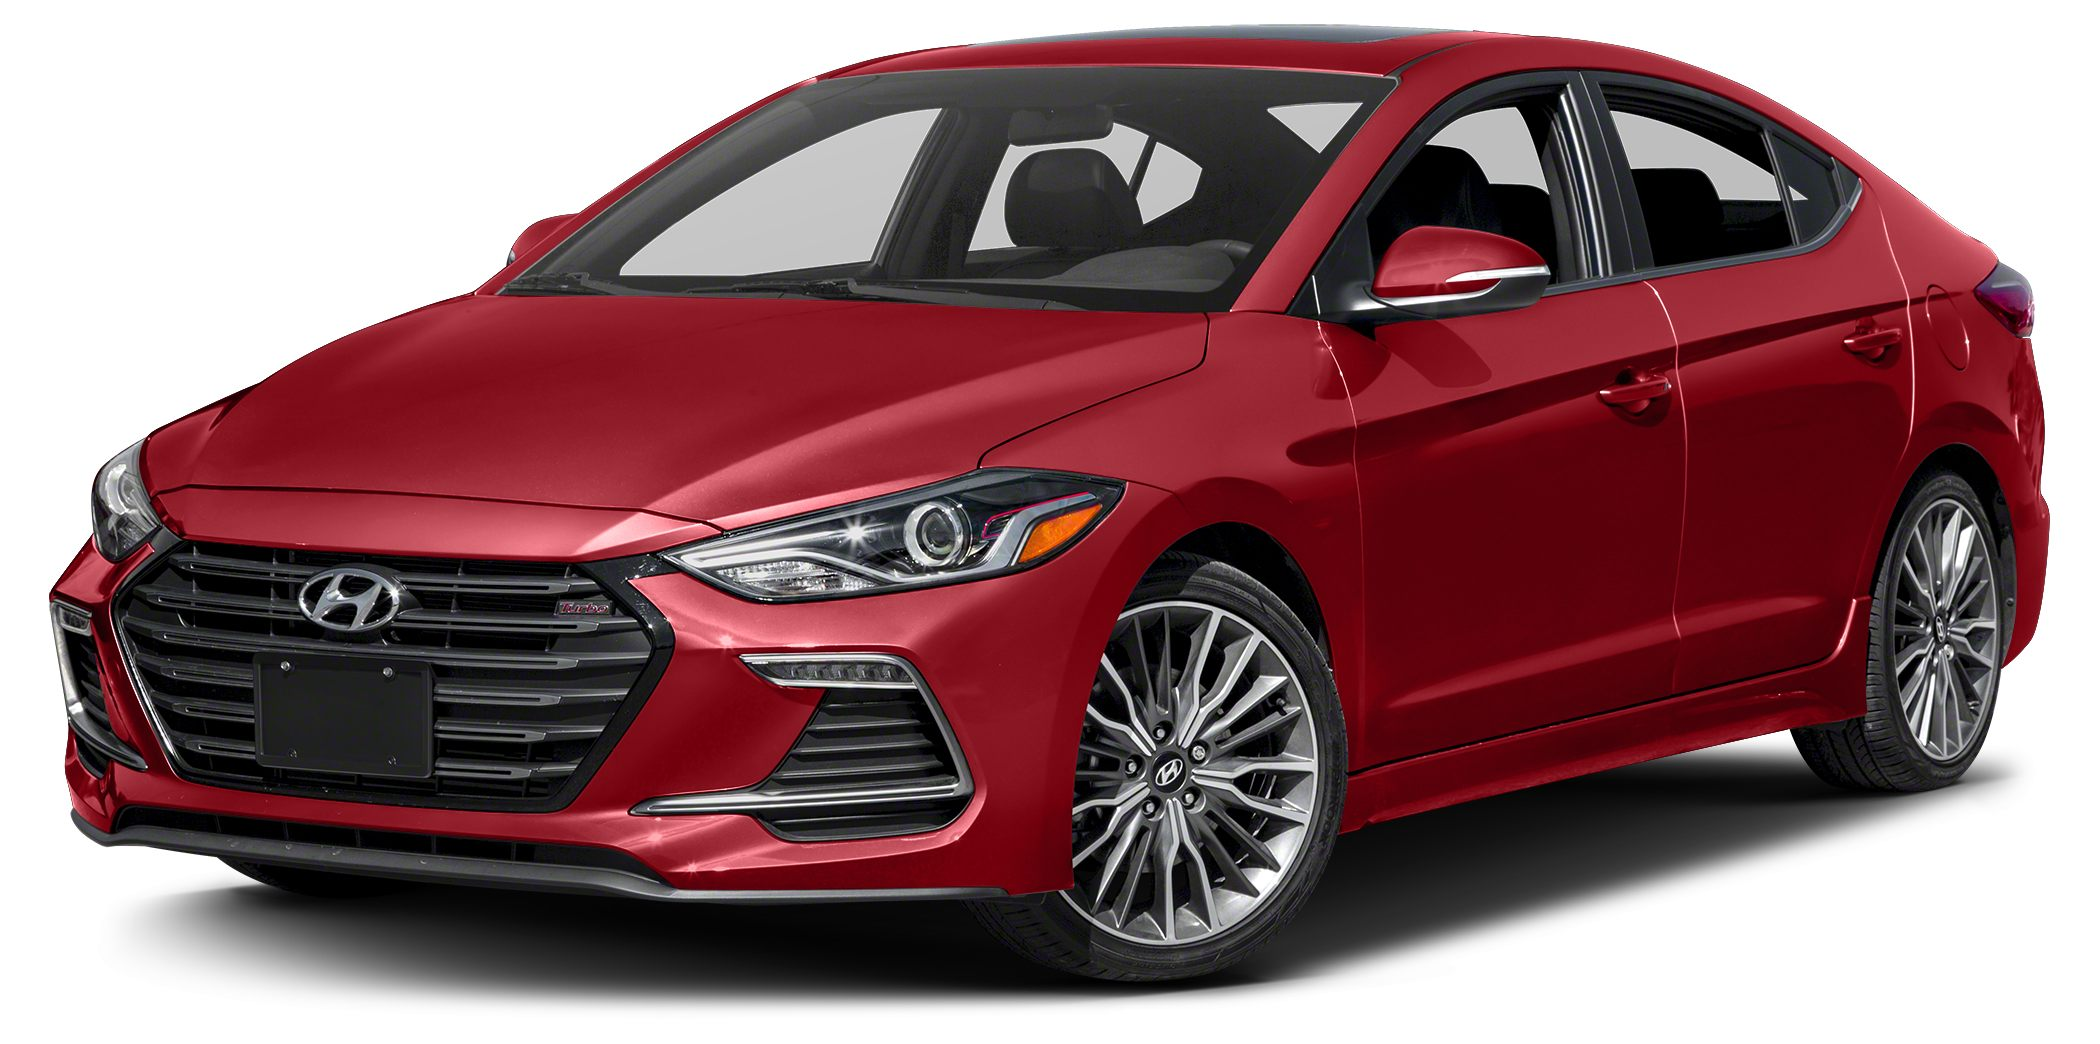 2017 Hyundai Elantra Sport Price includes 500 - Military Program Exp 06302017 1000 - Uber